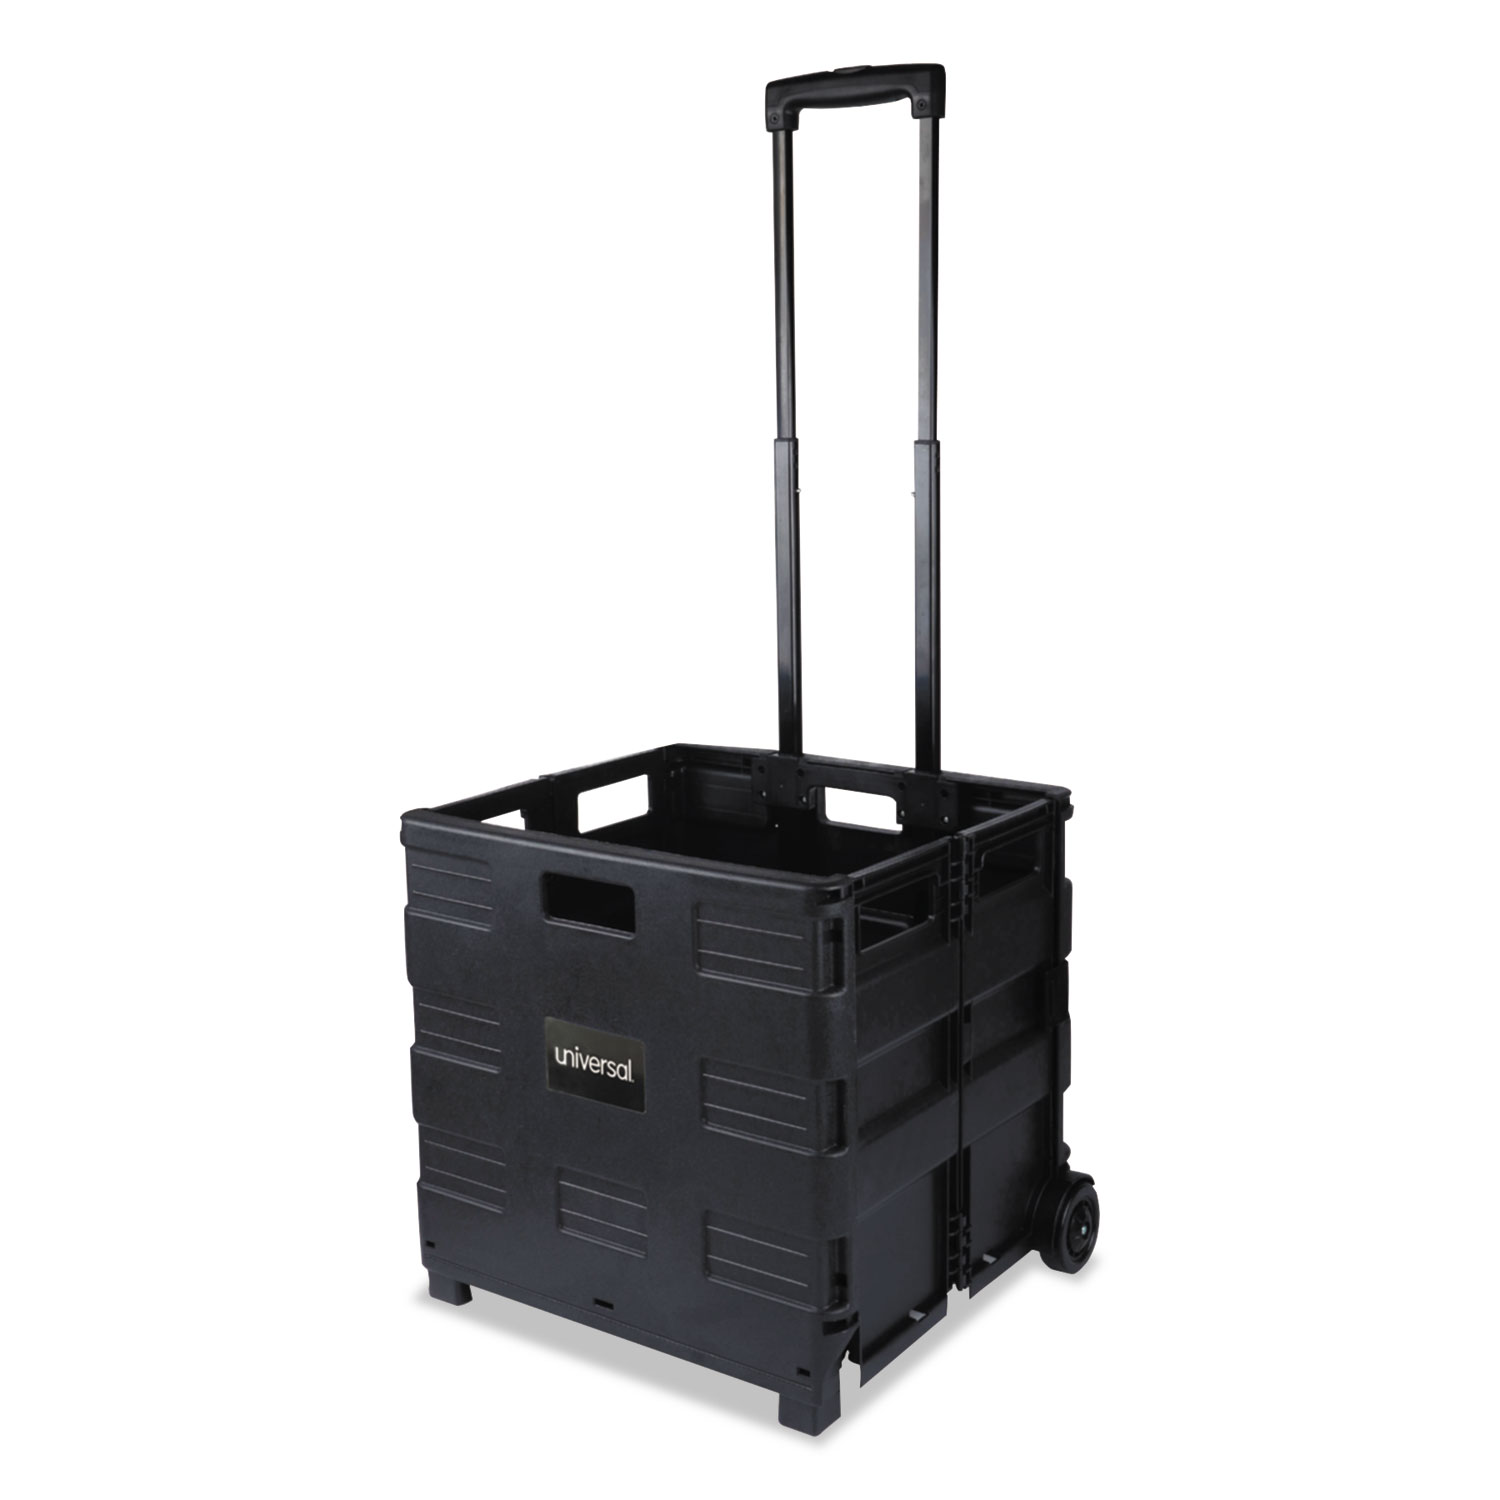 Collapsible Mobile Storage Crate, 18 1/4 x 15 x 18 1/4 to 39 3/8, Black